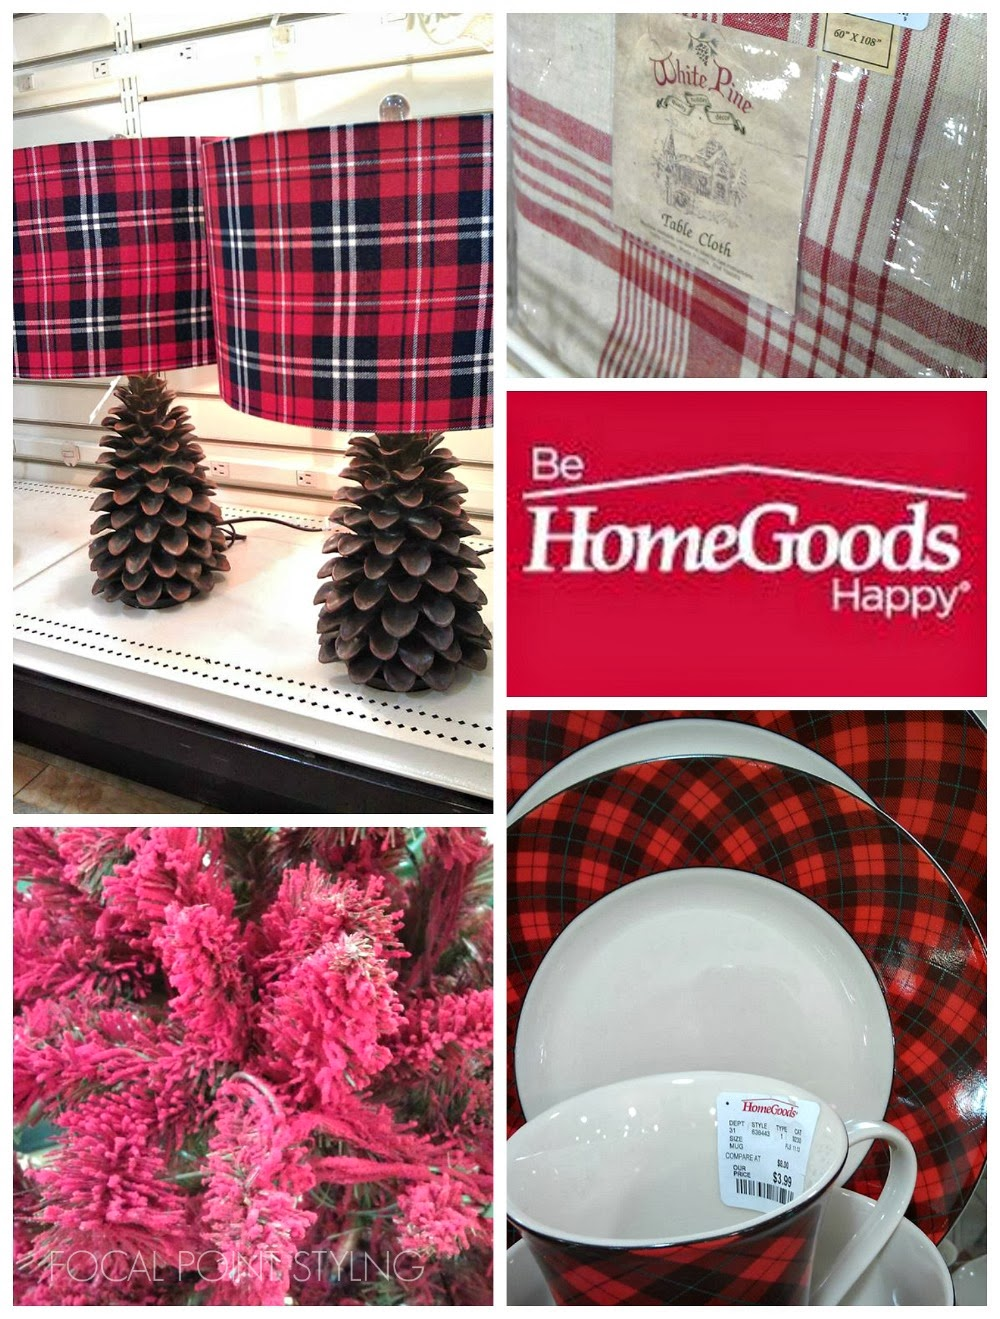 FOCAL POINT STYLING: GET HOLIDAY HOMEGOODS HAPPY WITH THESE FINDS!